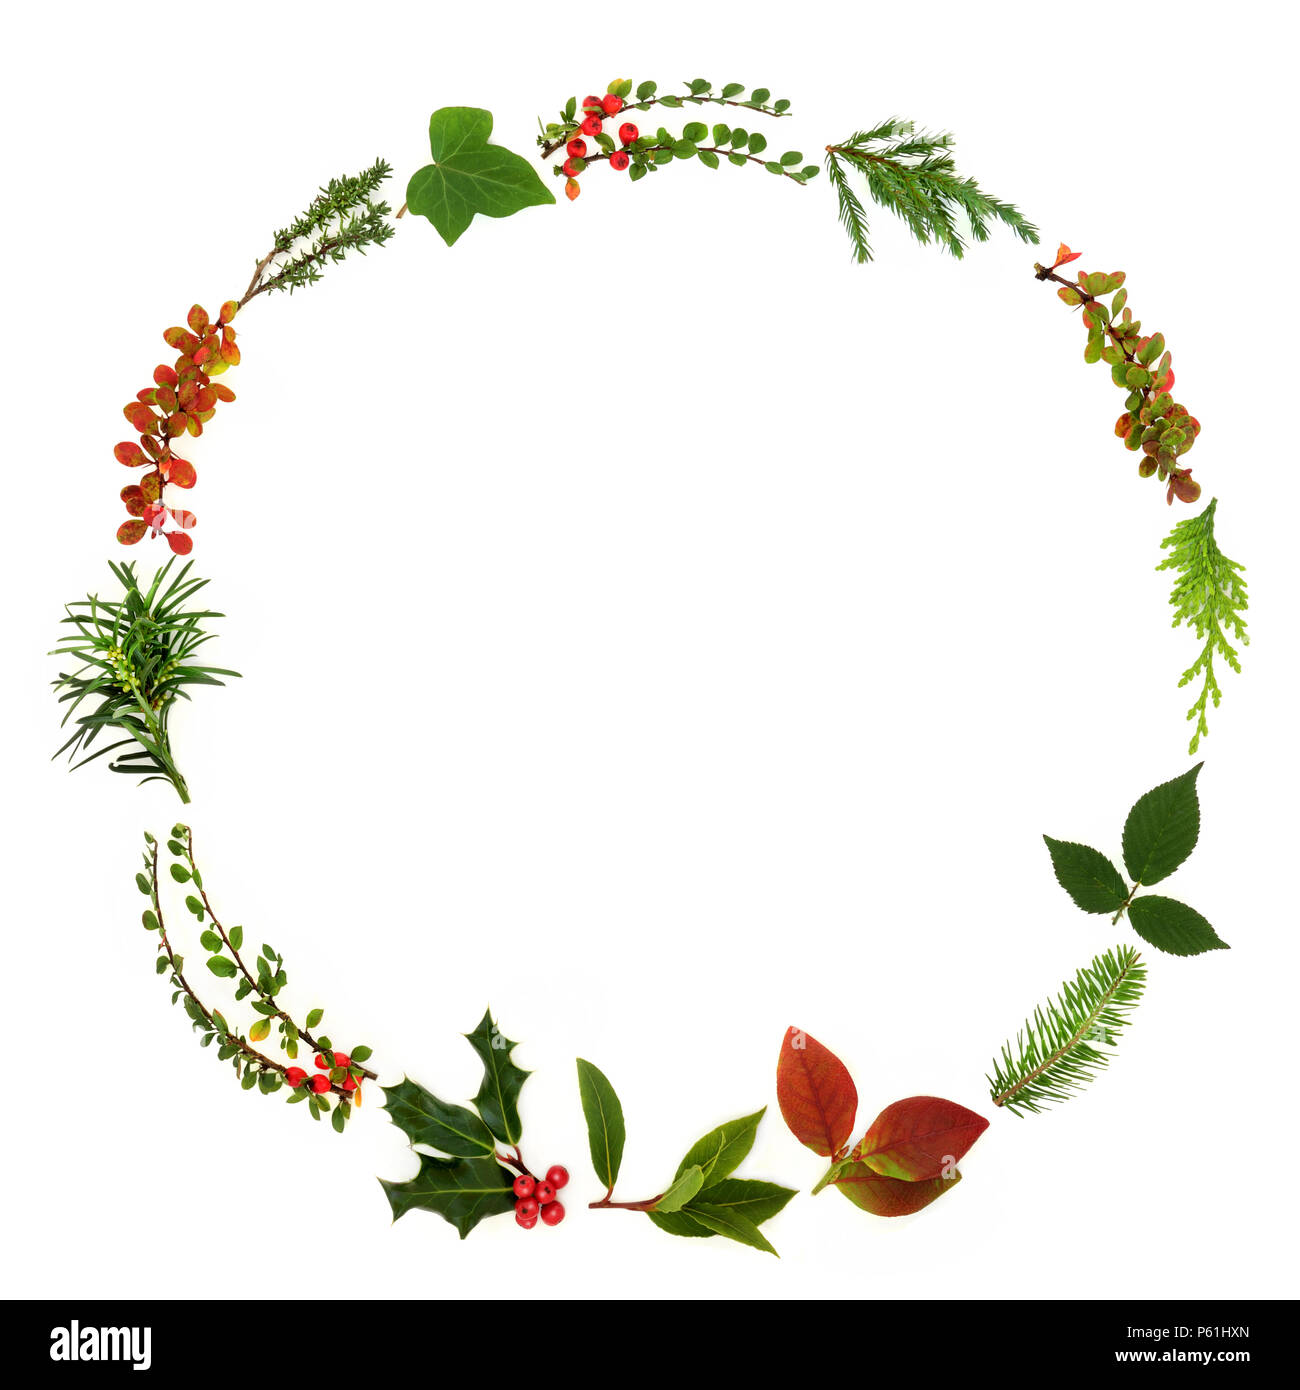 Winter and Christmas minimalist wreath garland with natural leaf sprigs, berries and plants on white background. Traditional christmas greeting card f - Stock Image